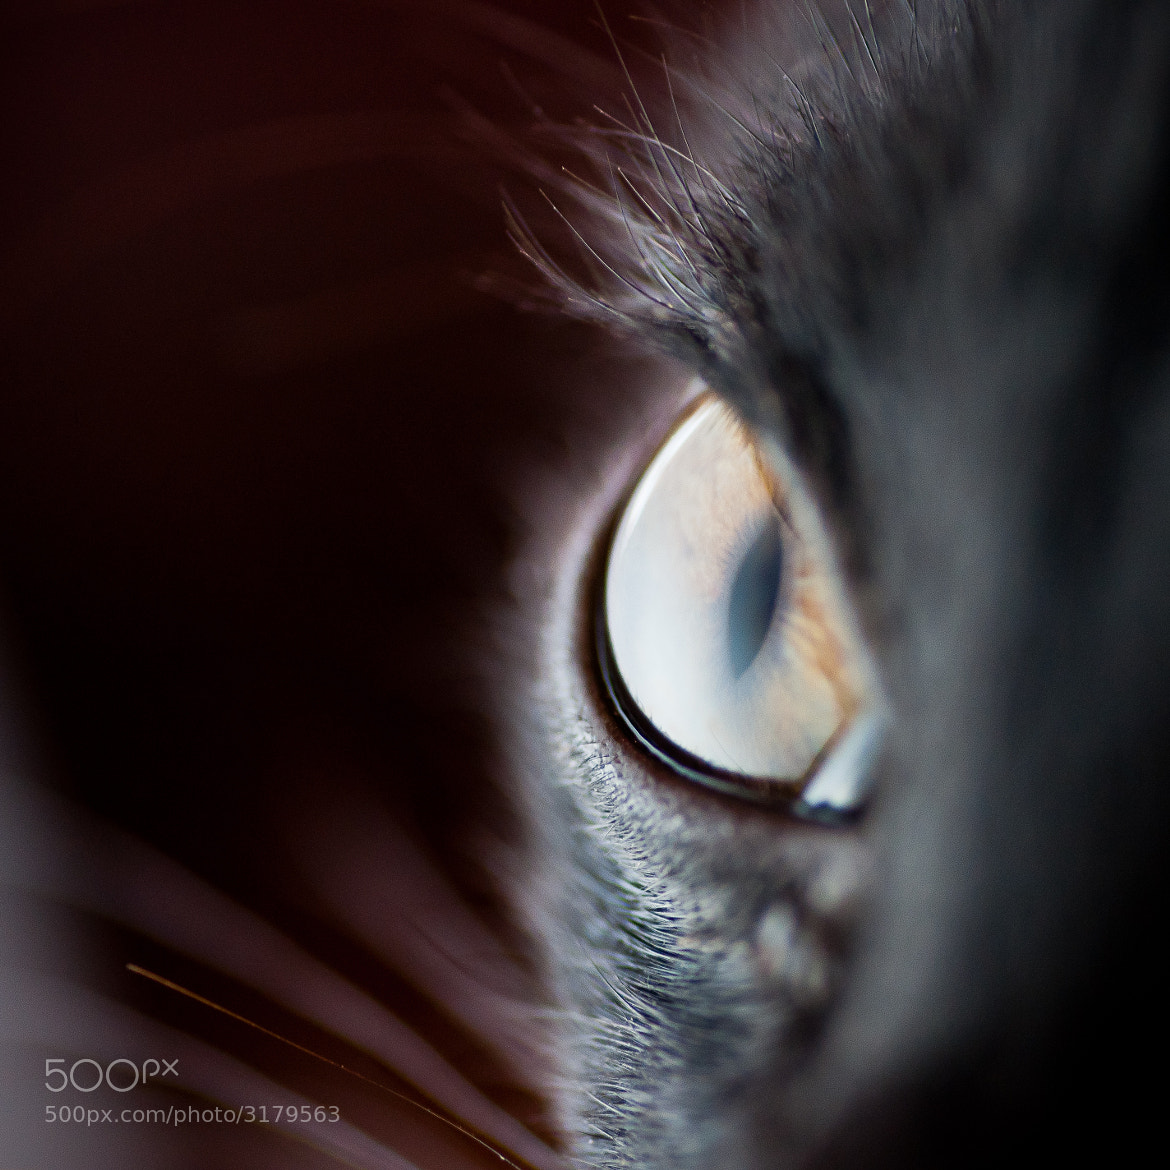 Photograph Kitten eye by David Cornejo on 500px